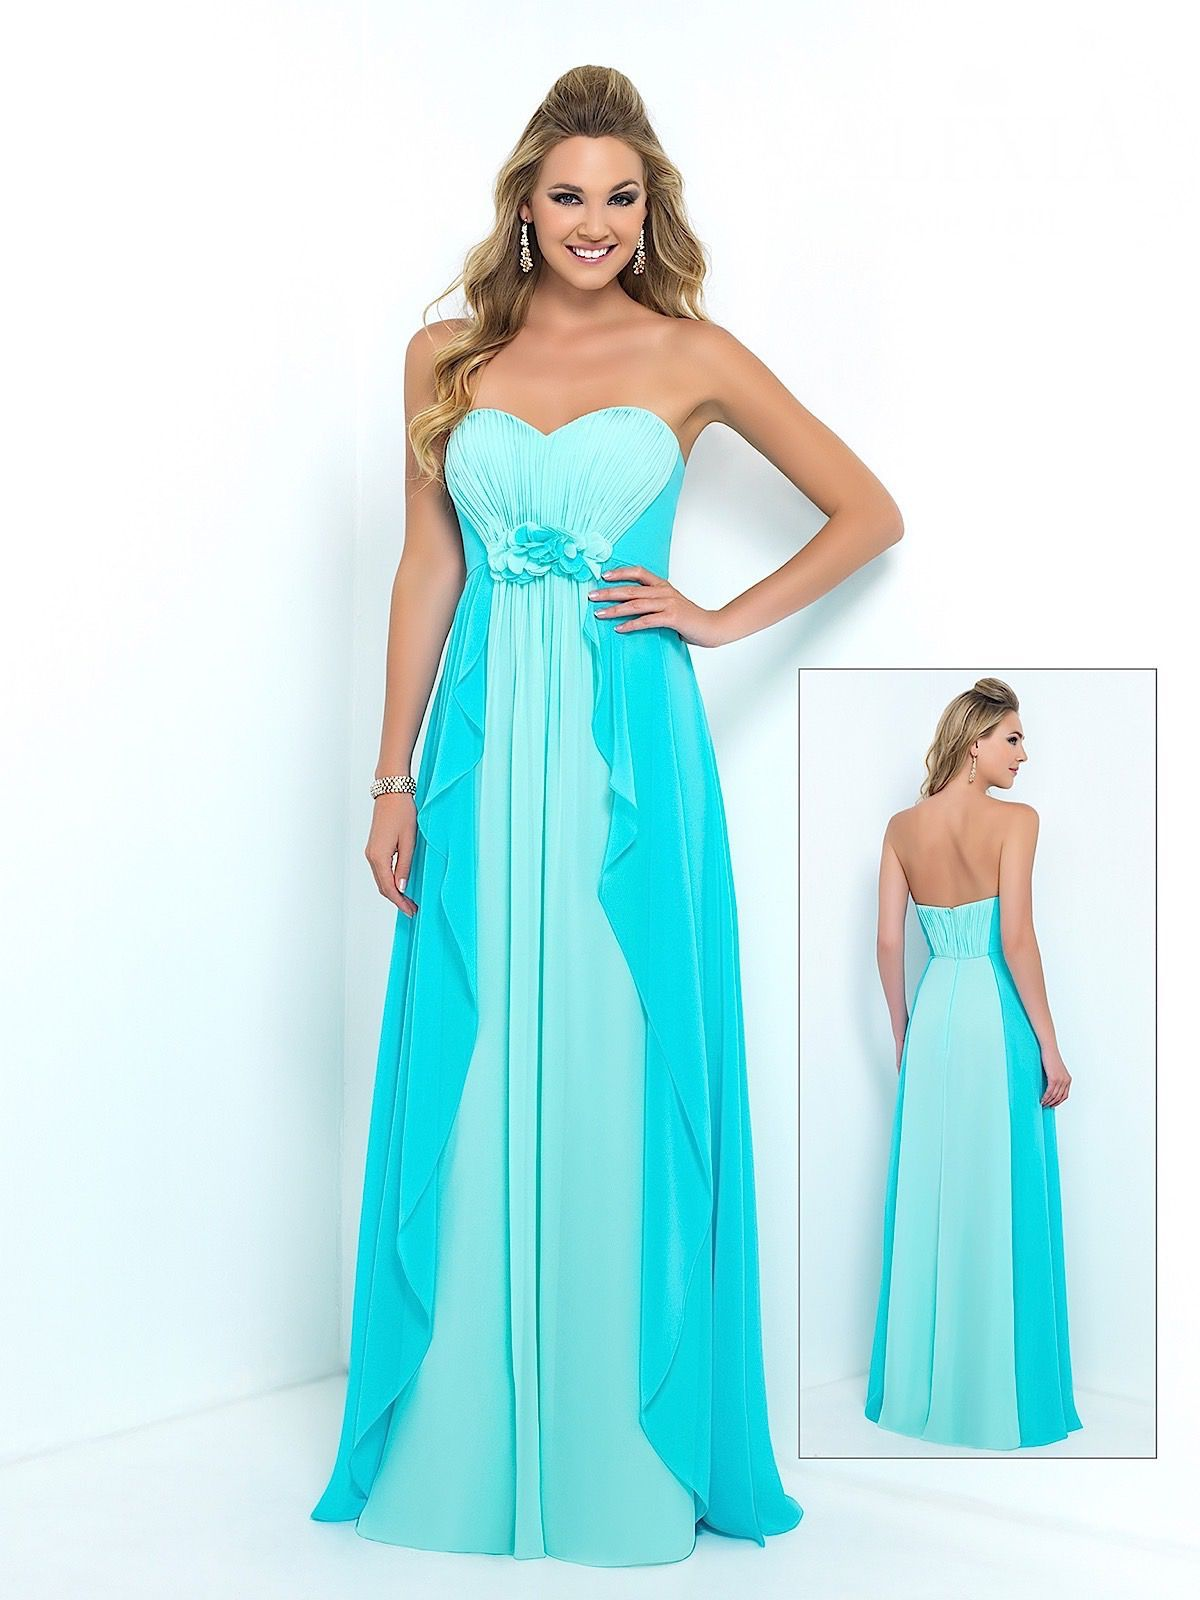 Bridesmaid dress turquoise wedding ideas pinterest turquoise bridesmaid dress turquoise ombrellifo Image collections